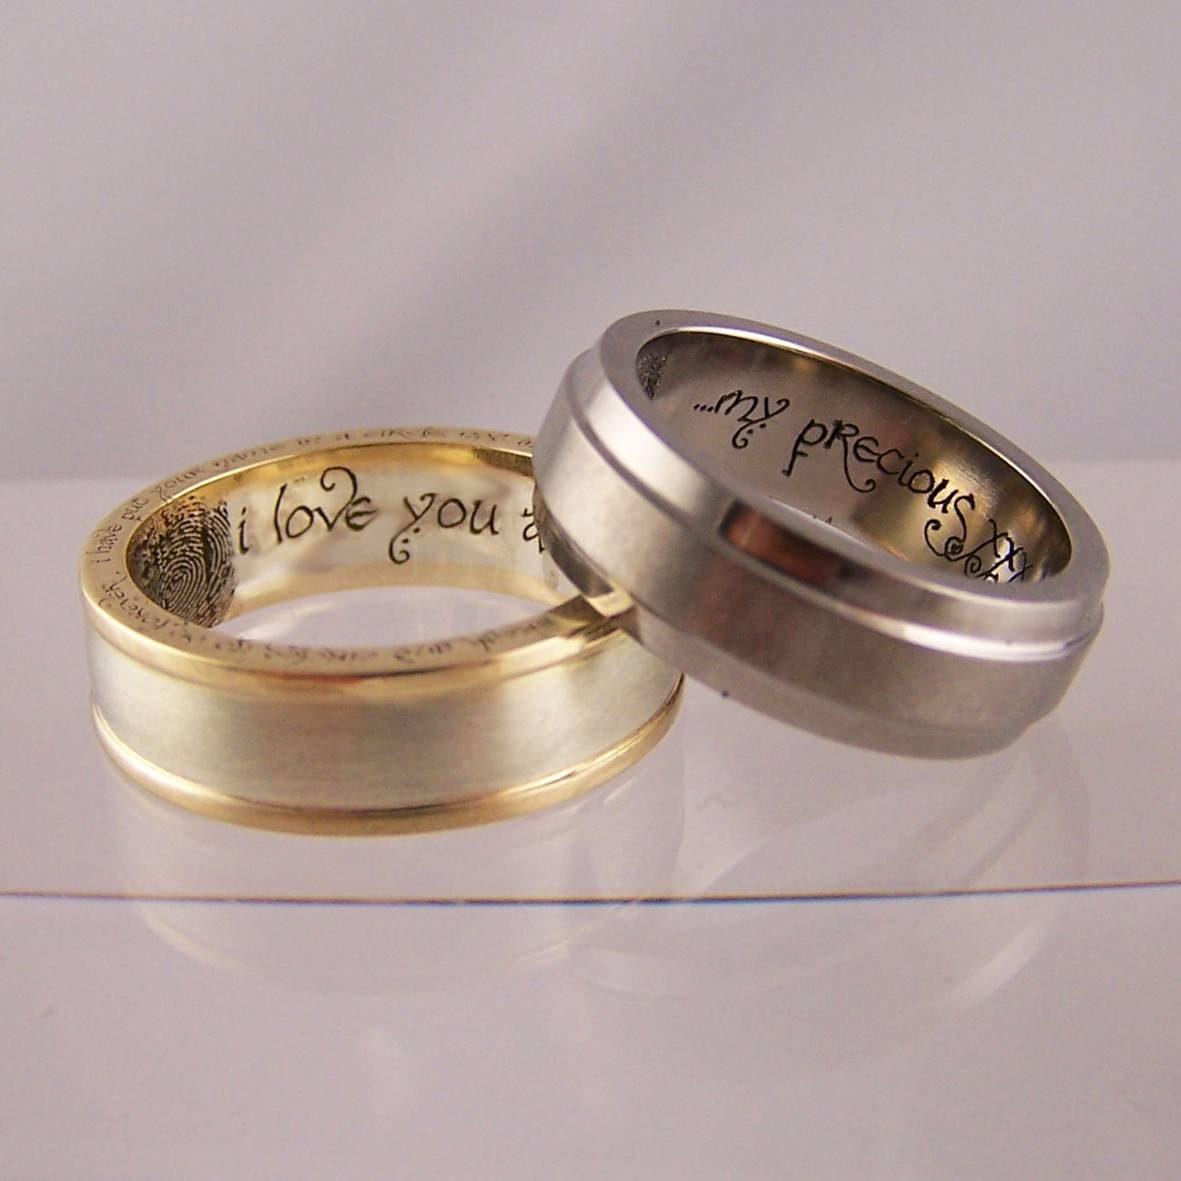 geek chic wedding rings other jewellery ring jewellery regarding lord of the rings wedding - Lord Of The Rings Wedding Rings